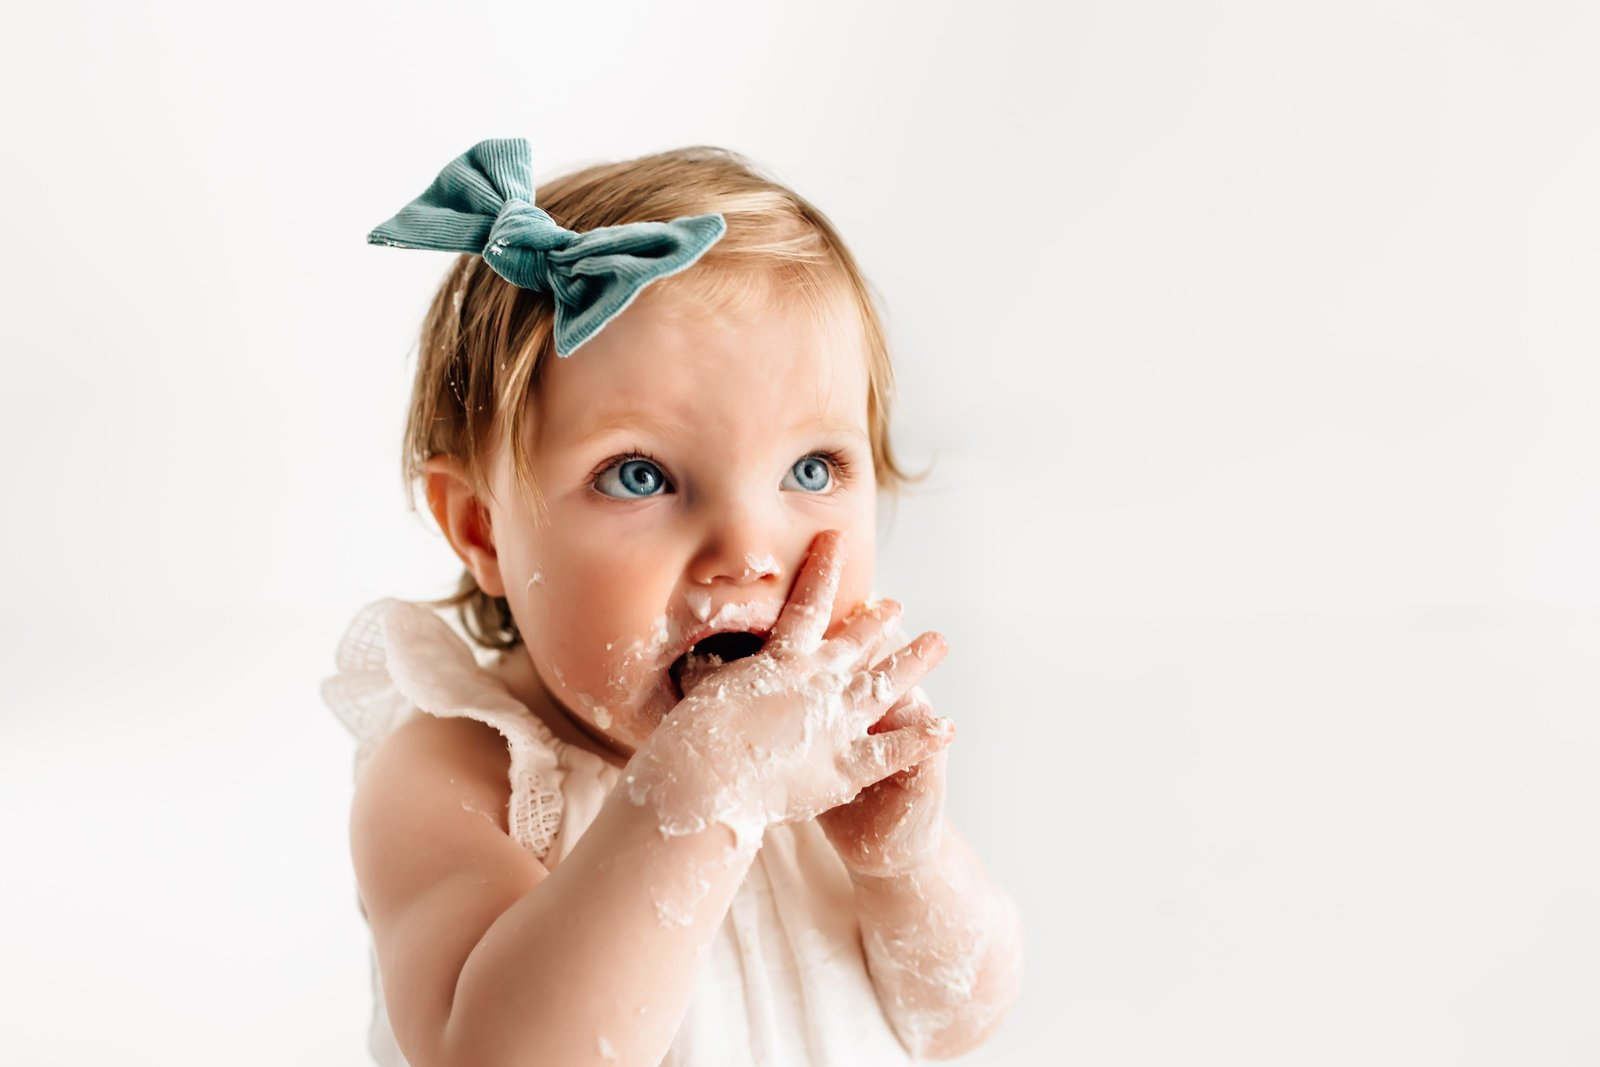 St_Louis_Baby_Photographer_Kelly_Laramore_Photography_130